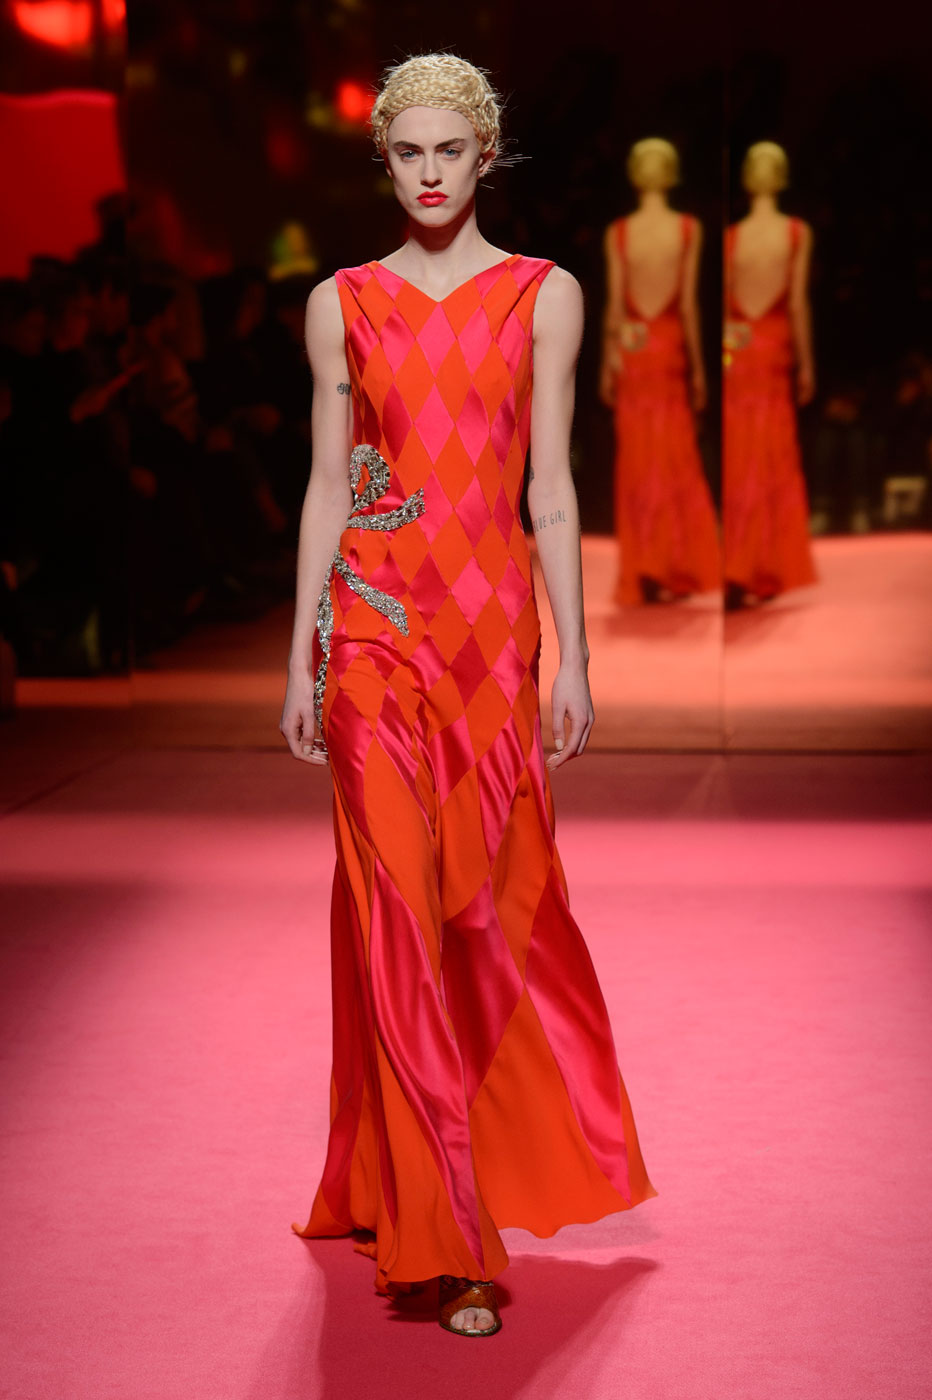 Schiaparelli-fashion-runway-show-haute-couture-paris-spring-summer-2015-the-impression-42